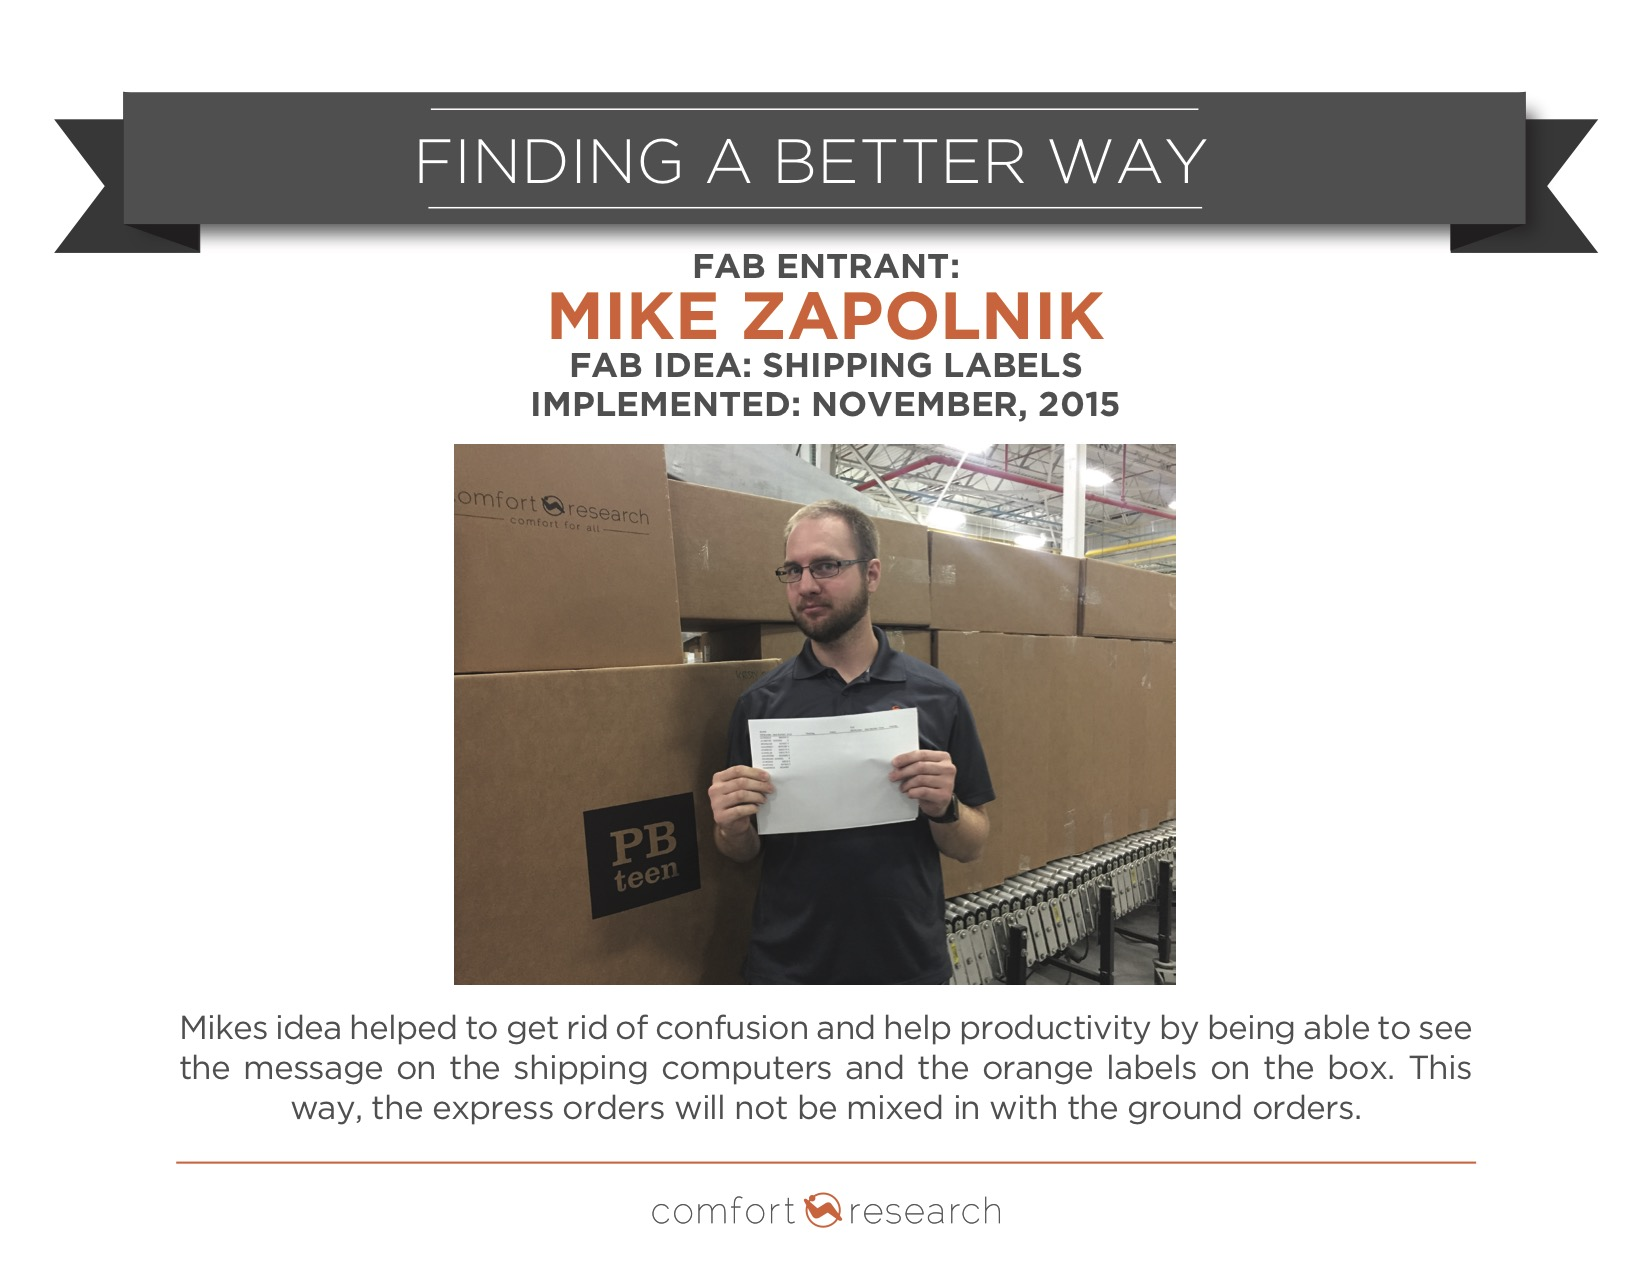 Mike Zapolink Comfort Research